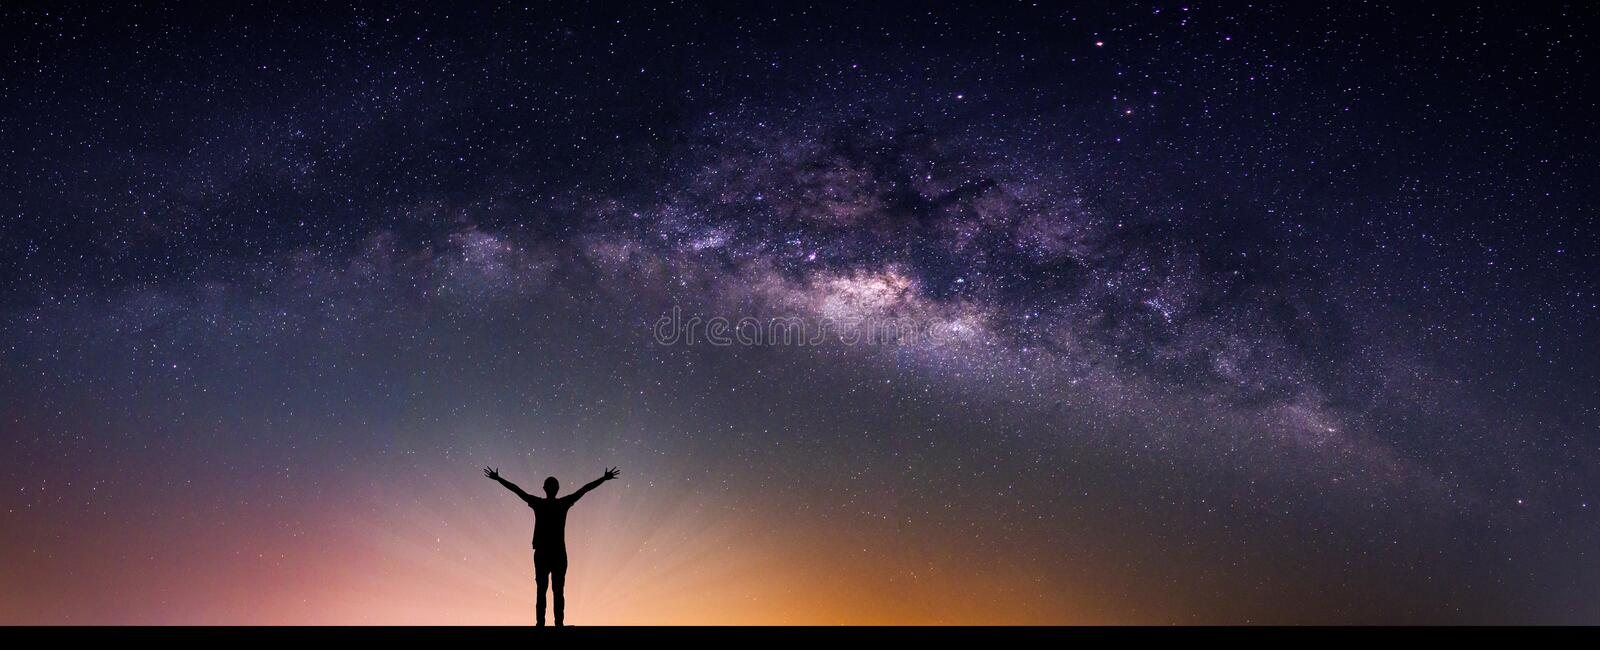 Landscape with Milky way galaxy. Night sky with stars and silhouette happy man on the mountain. Long exposure photograph. stock images